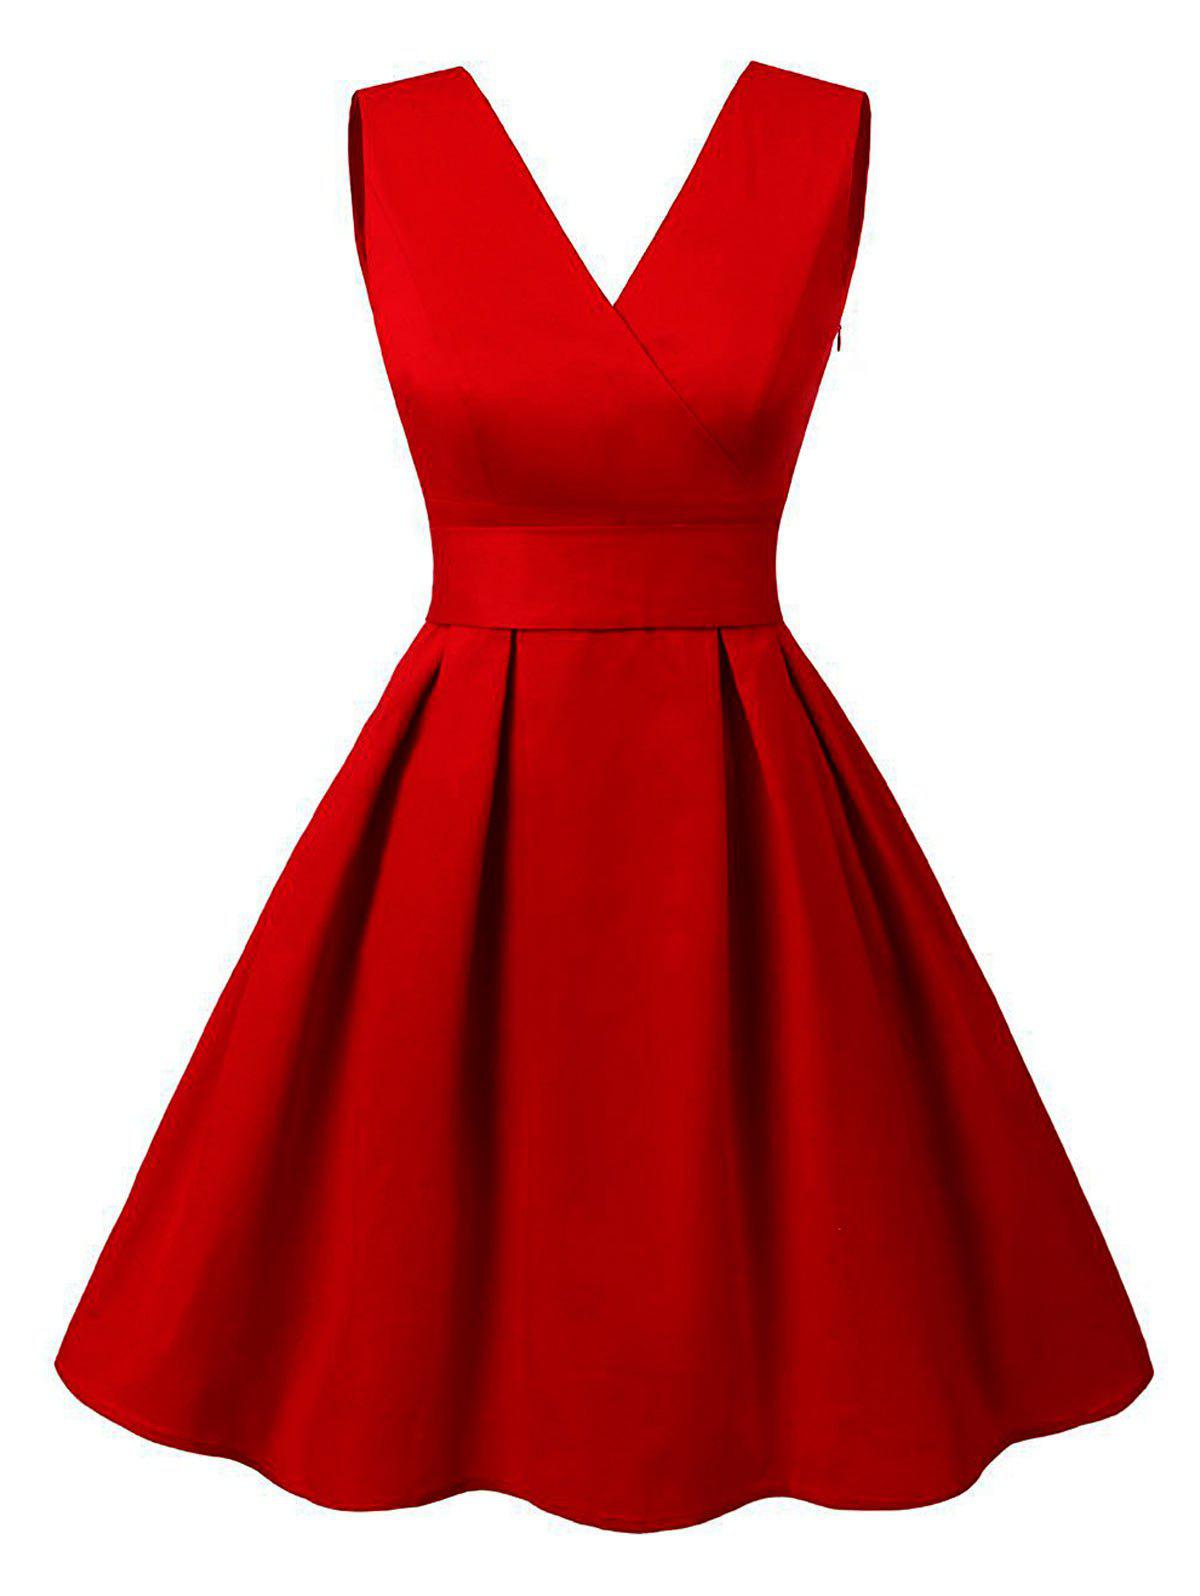 Cut Out V Neck Vintage Pin Up DressWOMEN<br><br>Size: 2XL; Color: RED; Style: Vintage; Material: Cotton,Polyester; Silhouette: A-Line; Dresses Length: Knee-Length; Neckline: V-Neck; Sleeve Length: Sleeveless; Embellishment: Cut Out; Pattern Type: Solid; With Belt: Yes; Season: Summer; Weight: 0.3800kg; Package Contents: 1 x Dress  1 x Belt;